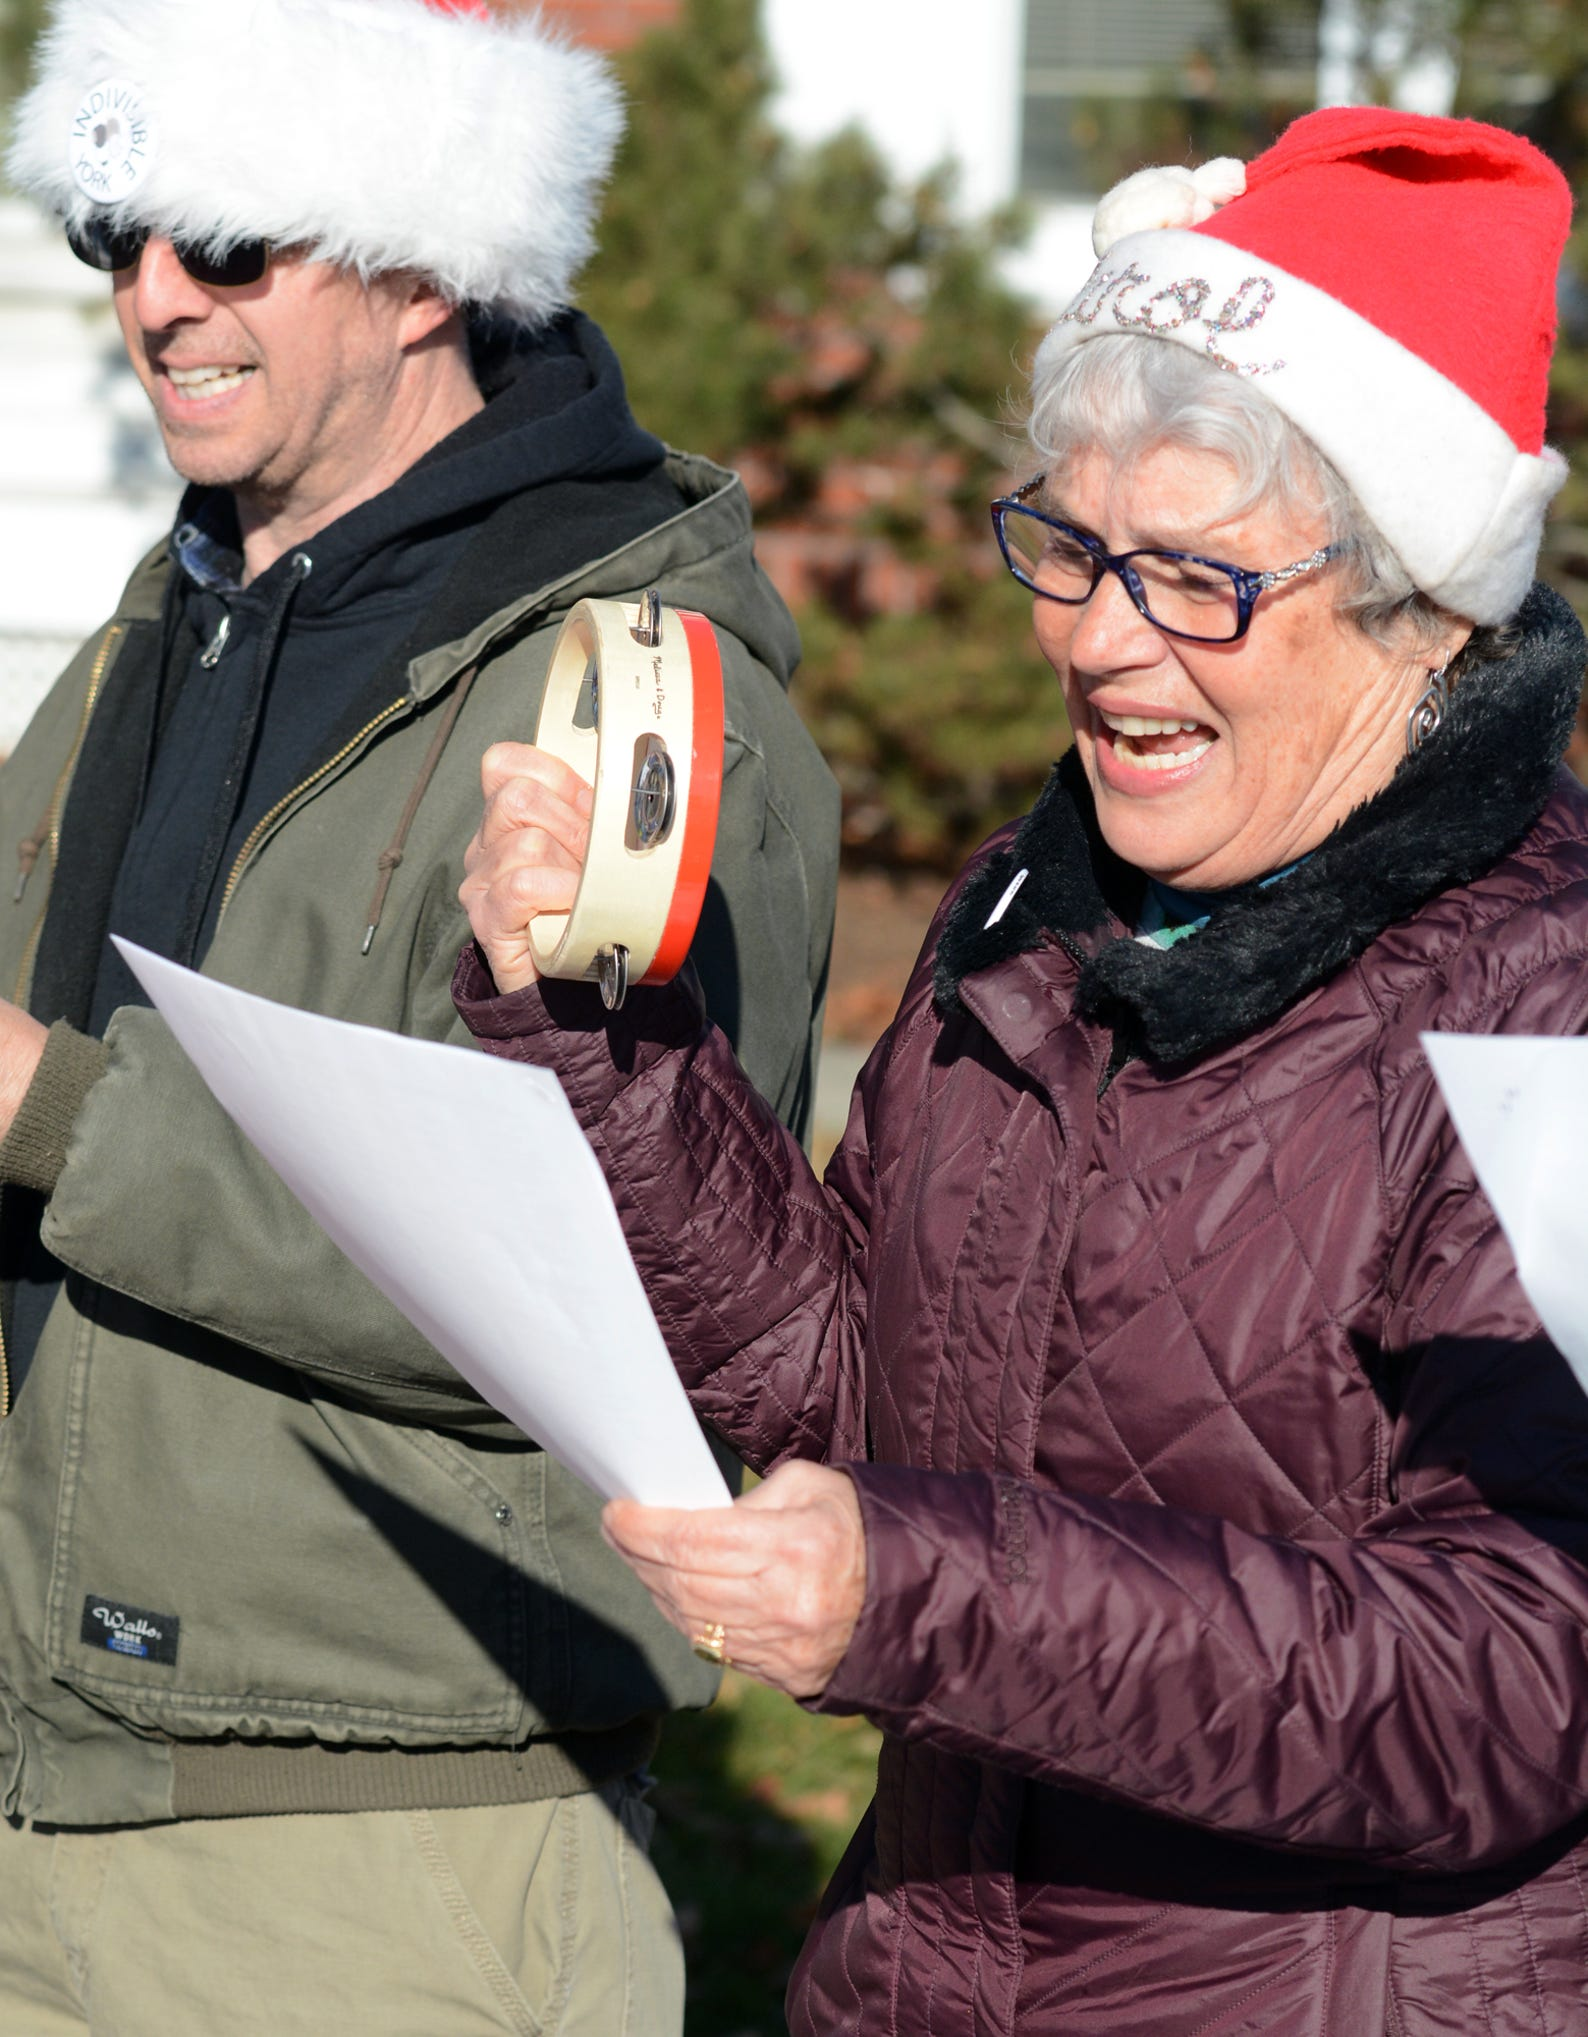 Indivisible York member Carol Stowell of Thomasville plays tambourine and sings during a